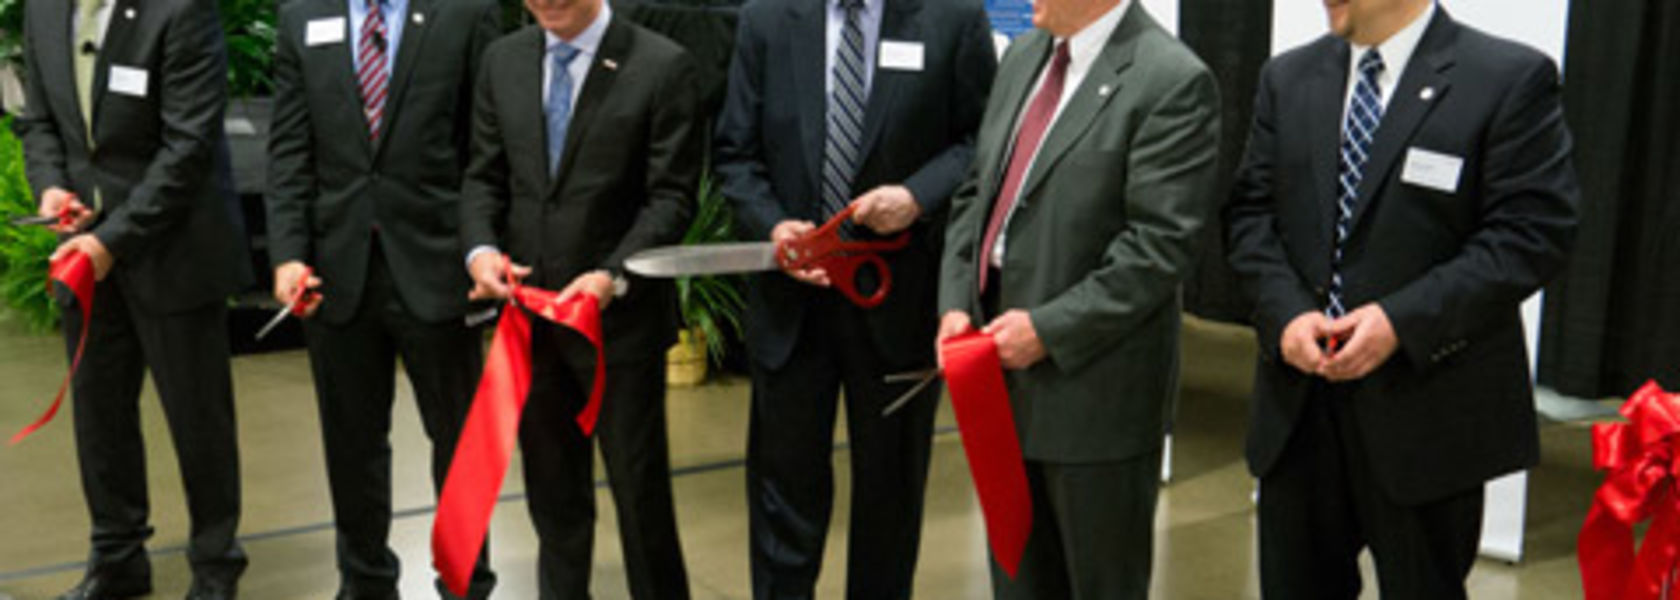 Bosch Rexroth expands Bethlehem facility